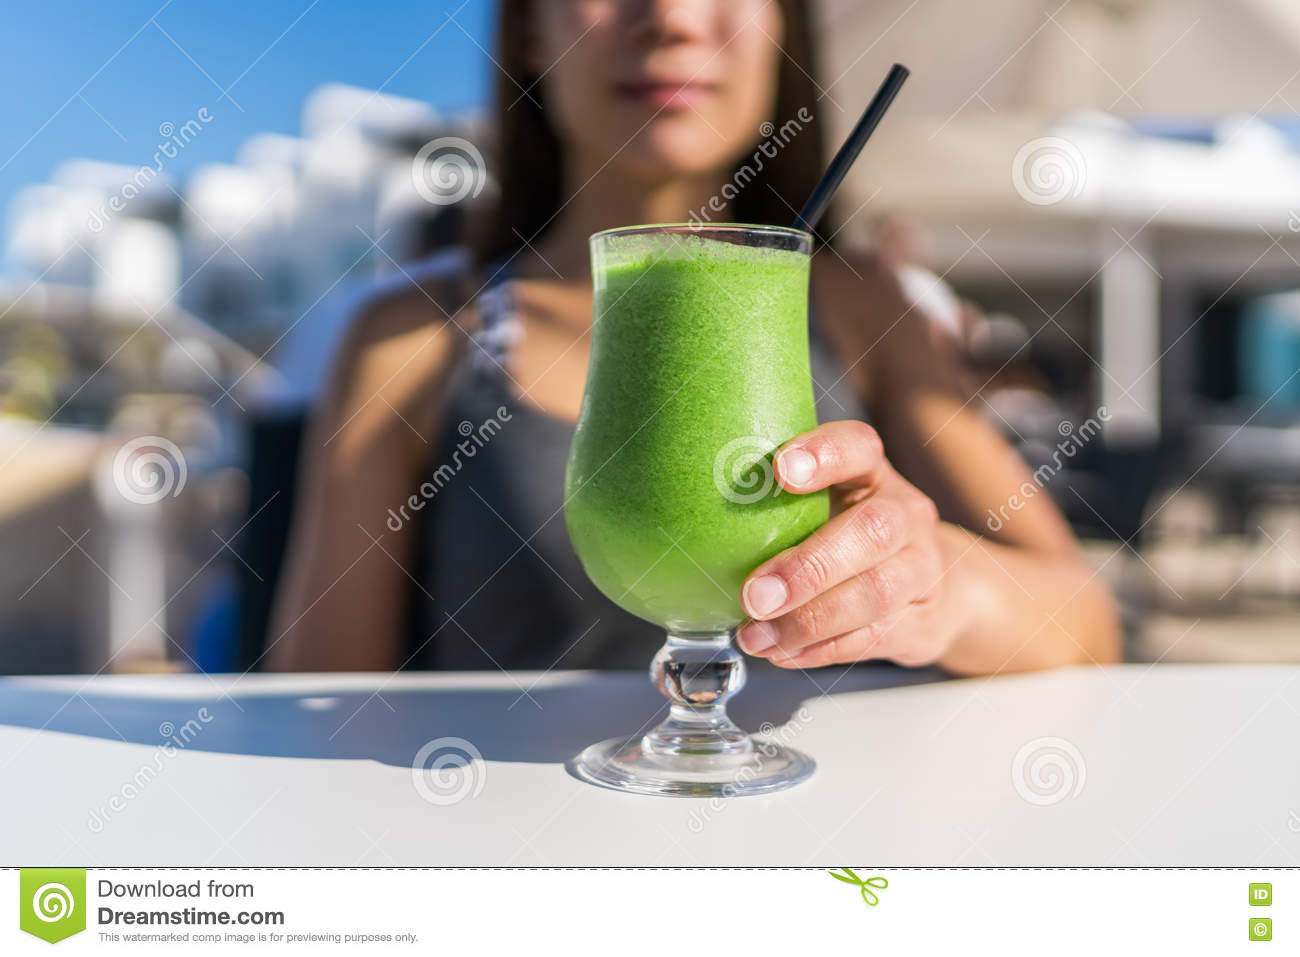 Healthy Lifestyle Woman Drinking Cafe Green Juice Stock